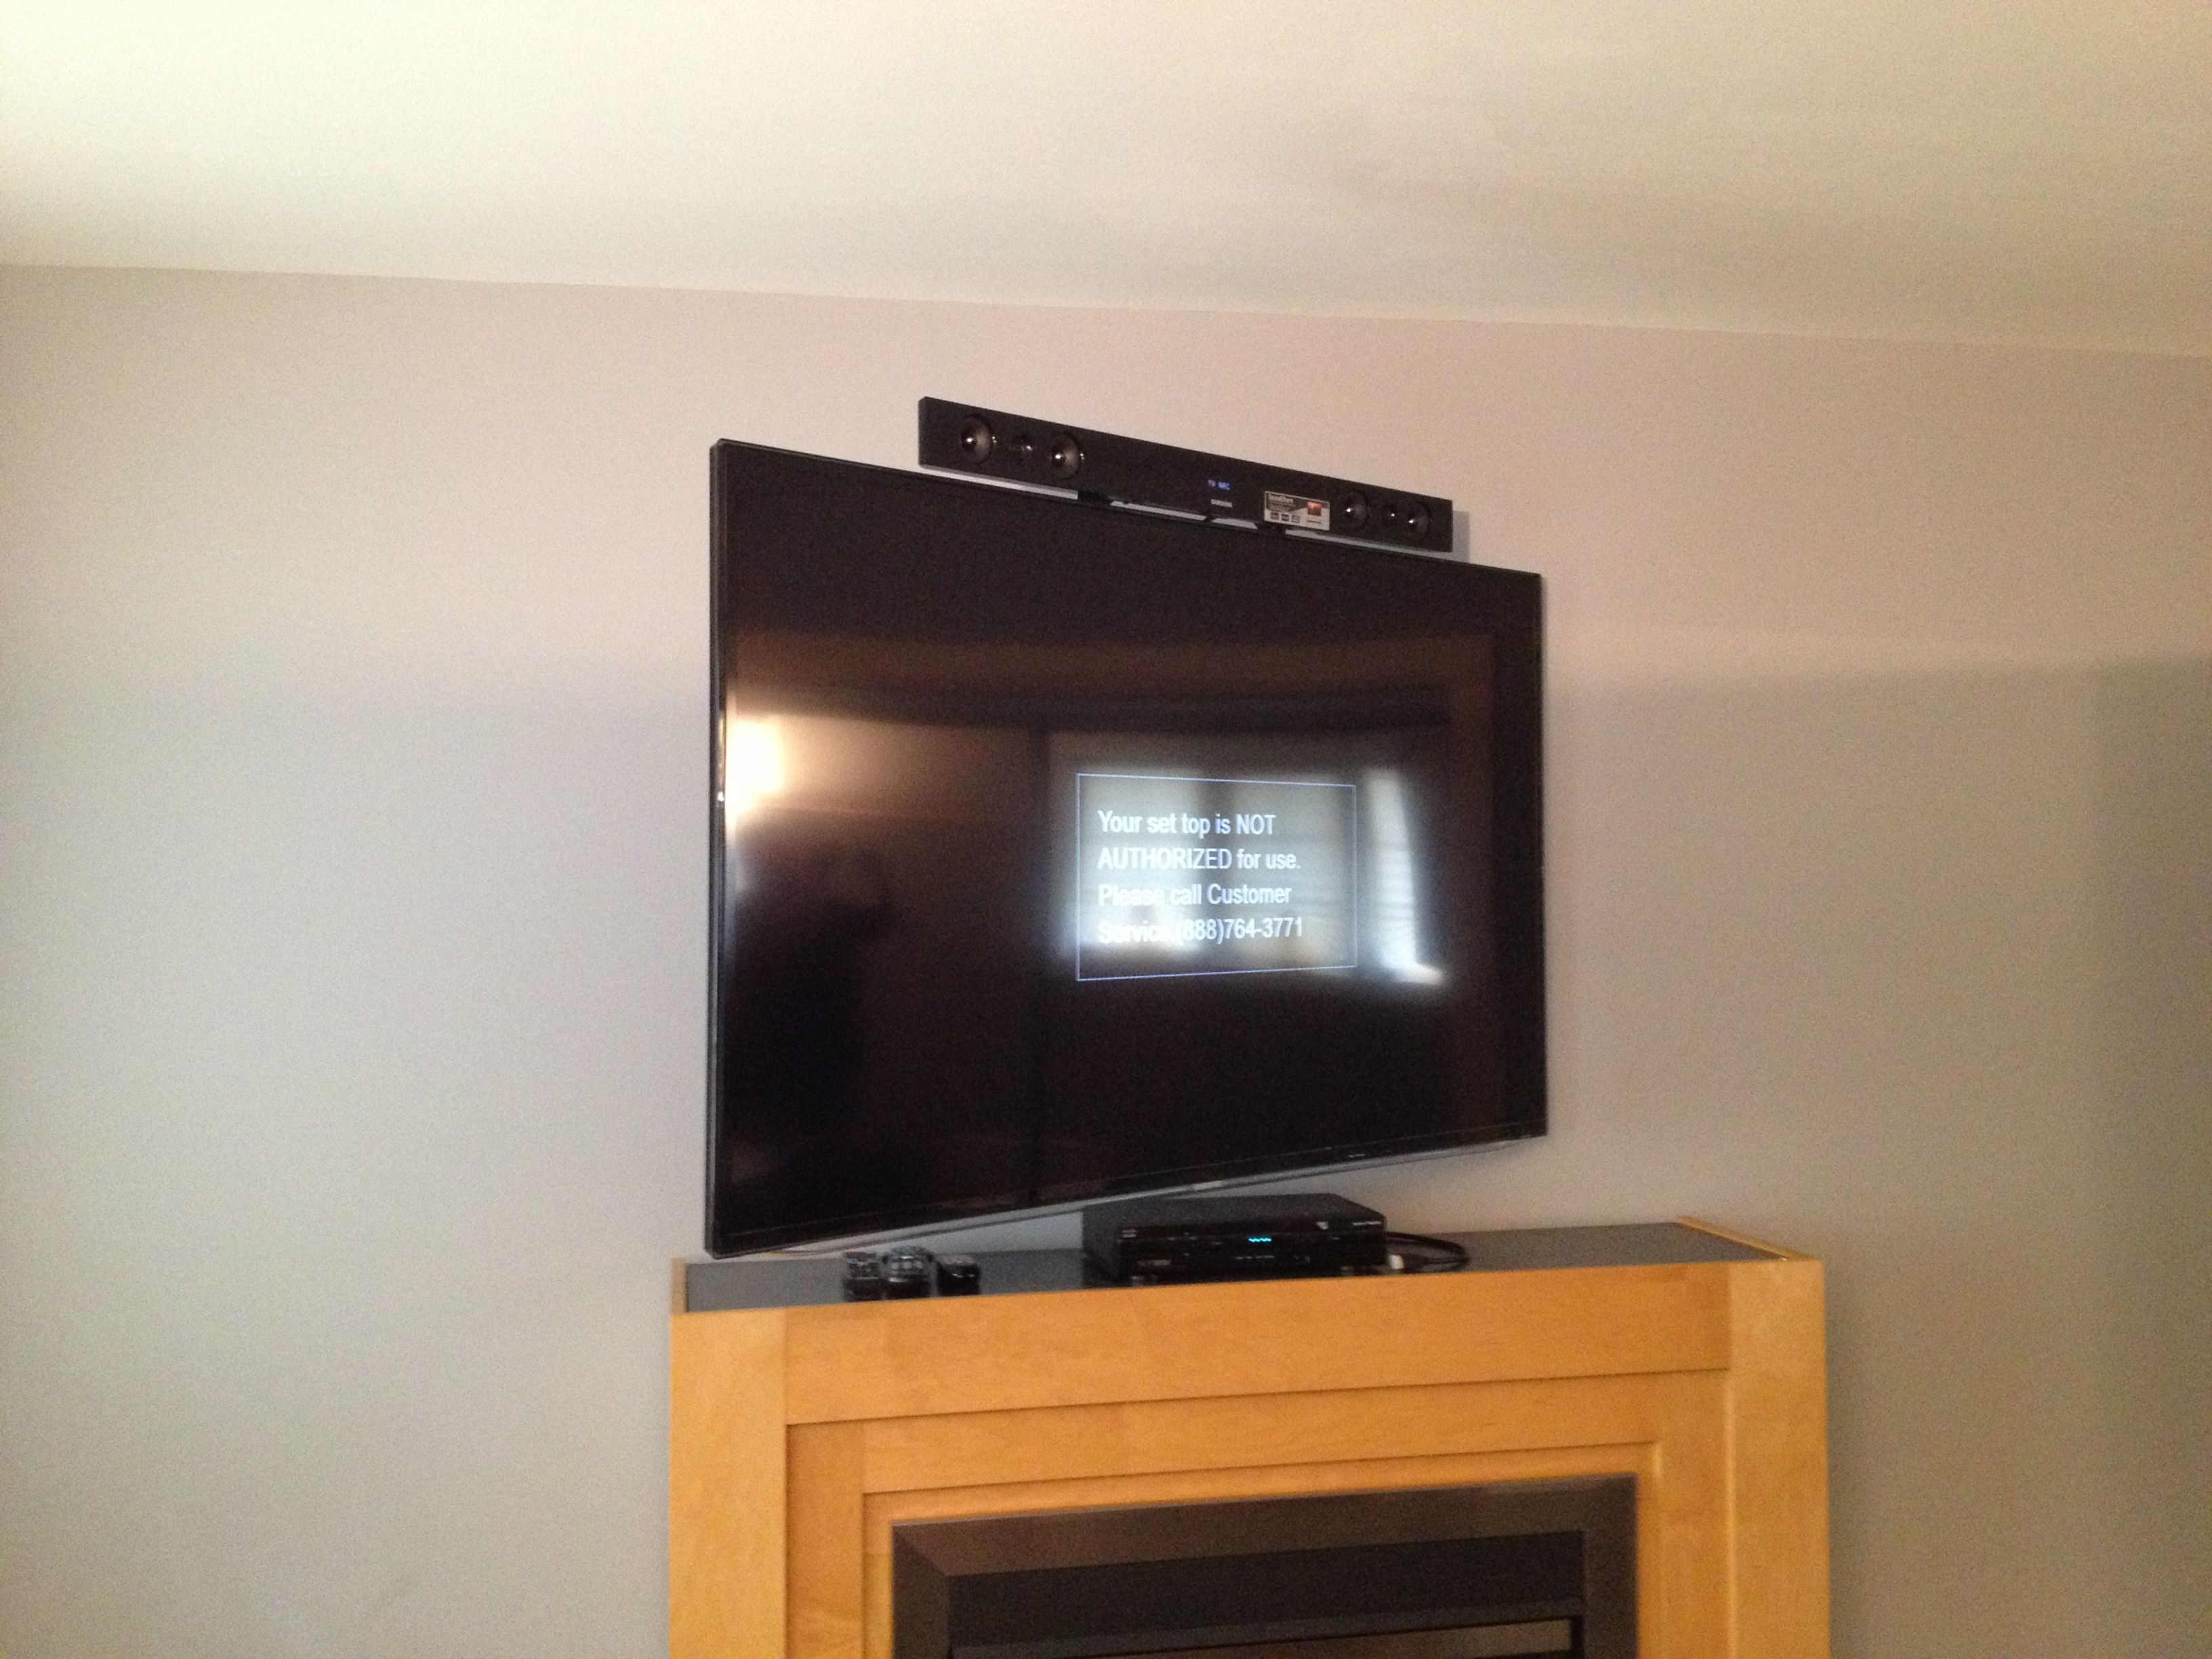 Samsung Sound Bar Installed With Sound Bar Bracket Attached To The